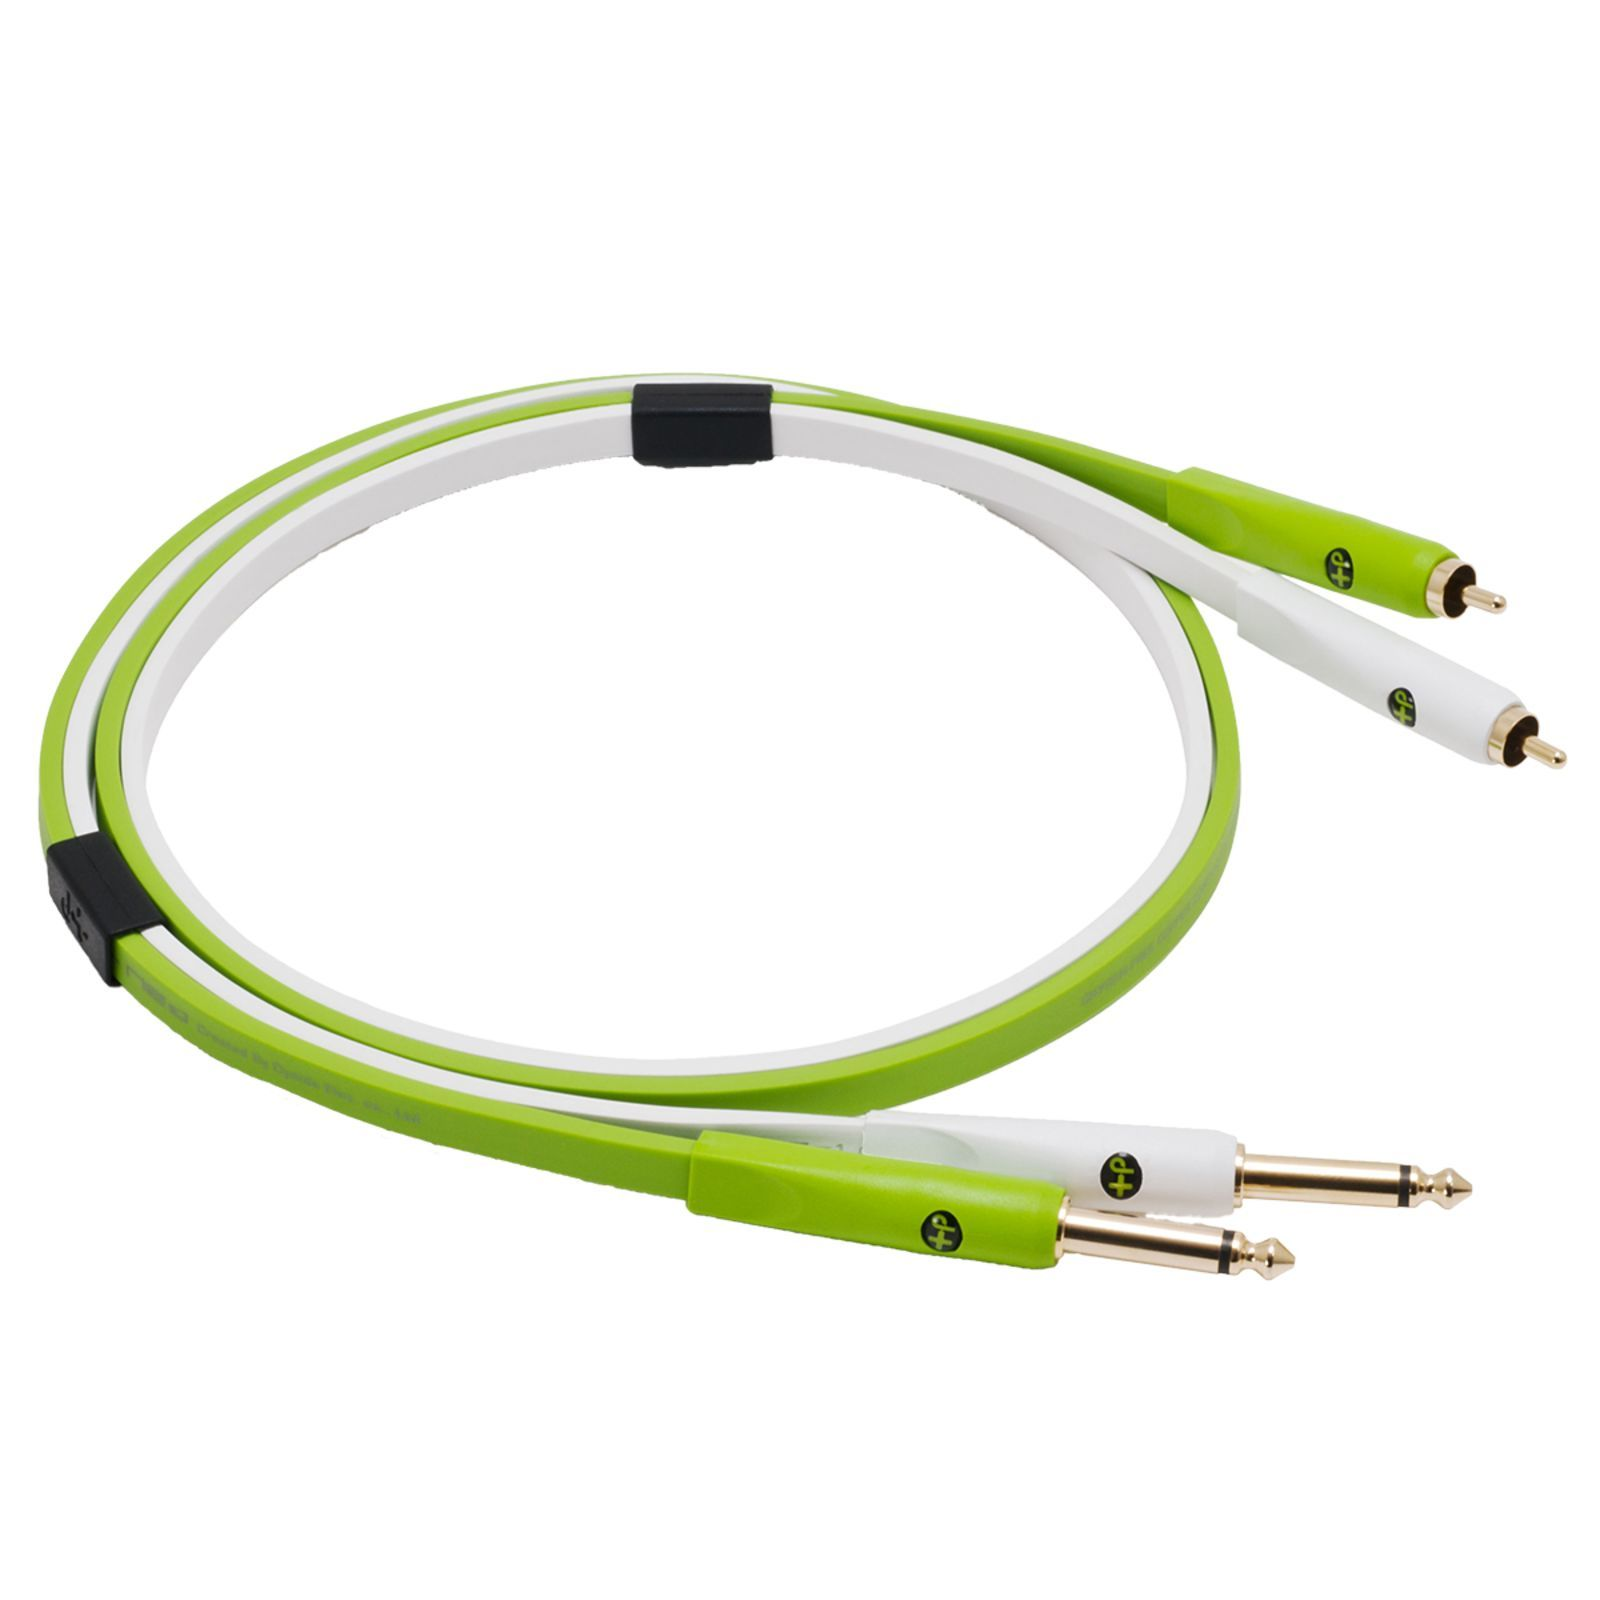 NEO by Oyaide d+ Stereo RCA/2x6,3mm cable jack, Clase B, largo 2,0m  Imagen del producto